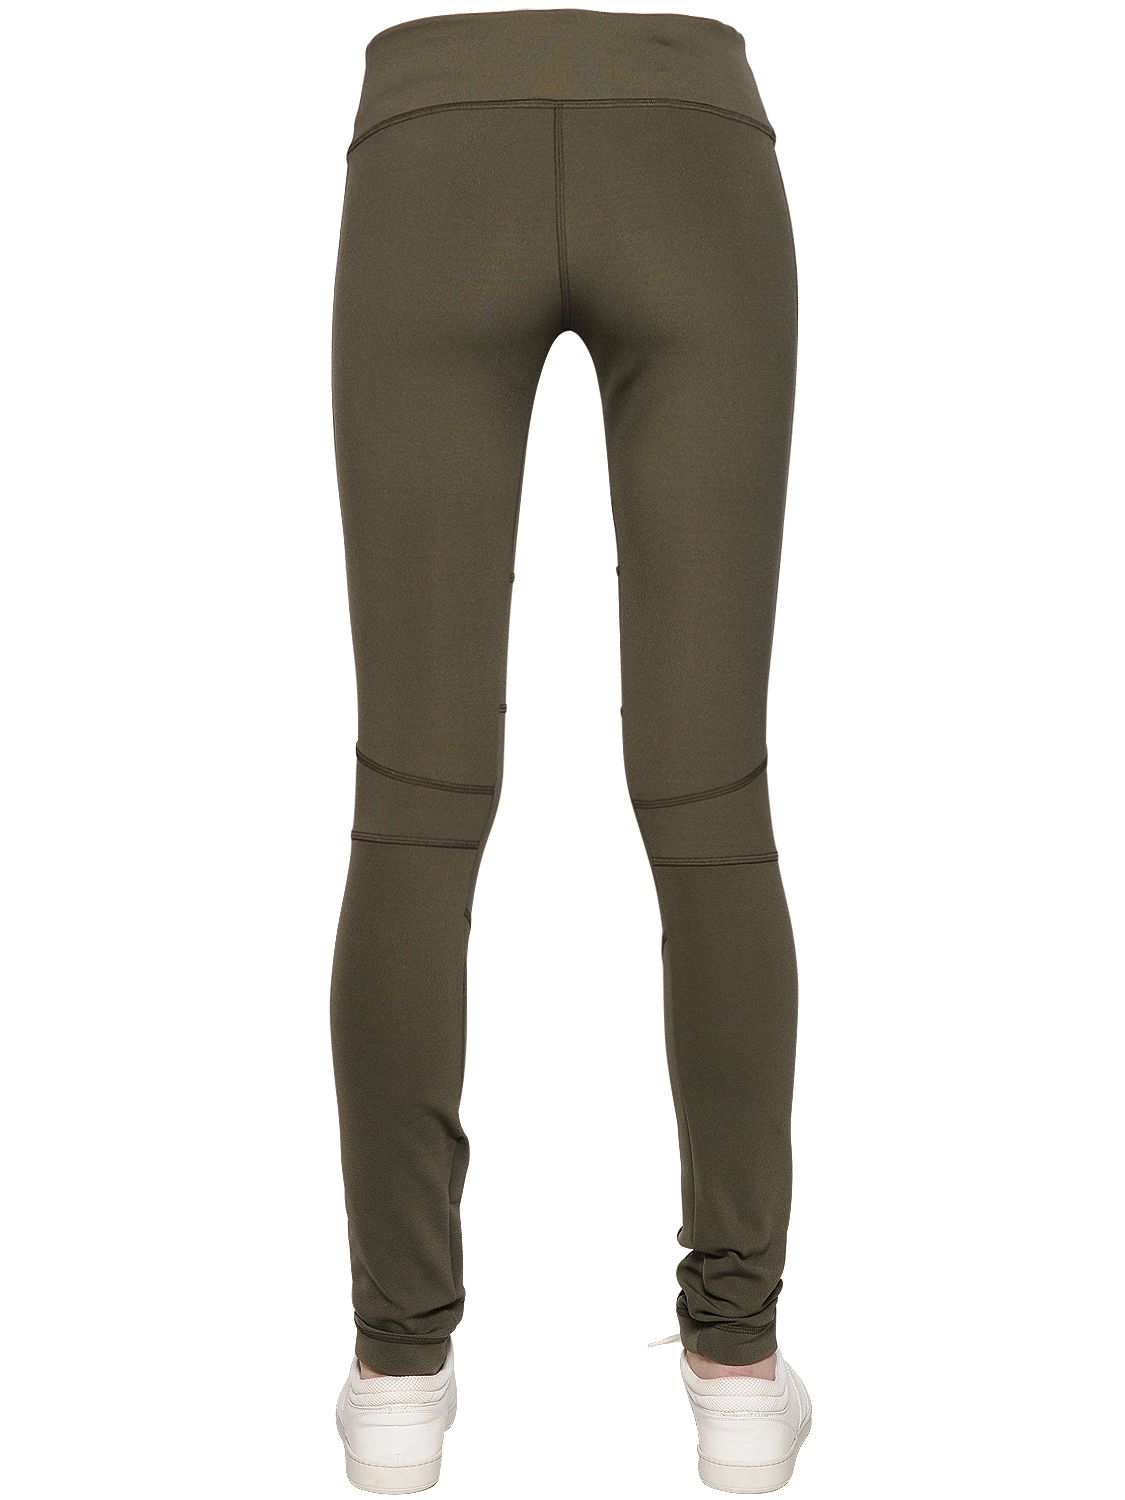 51ee5d5f1f4ad Callens Microfiber Leggings With Mesh Inserts in Green - Lyst